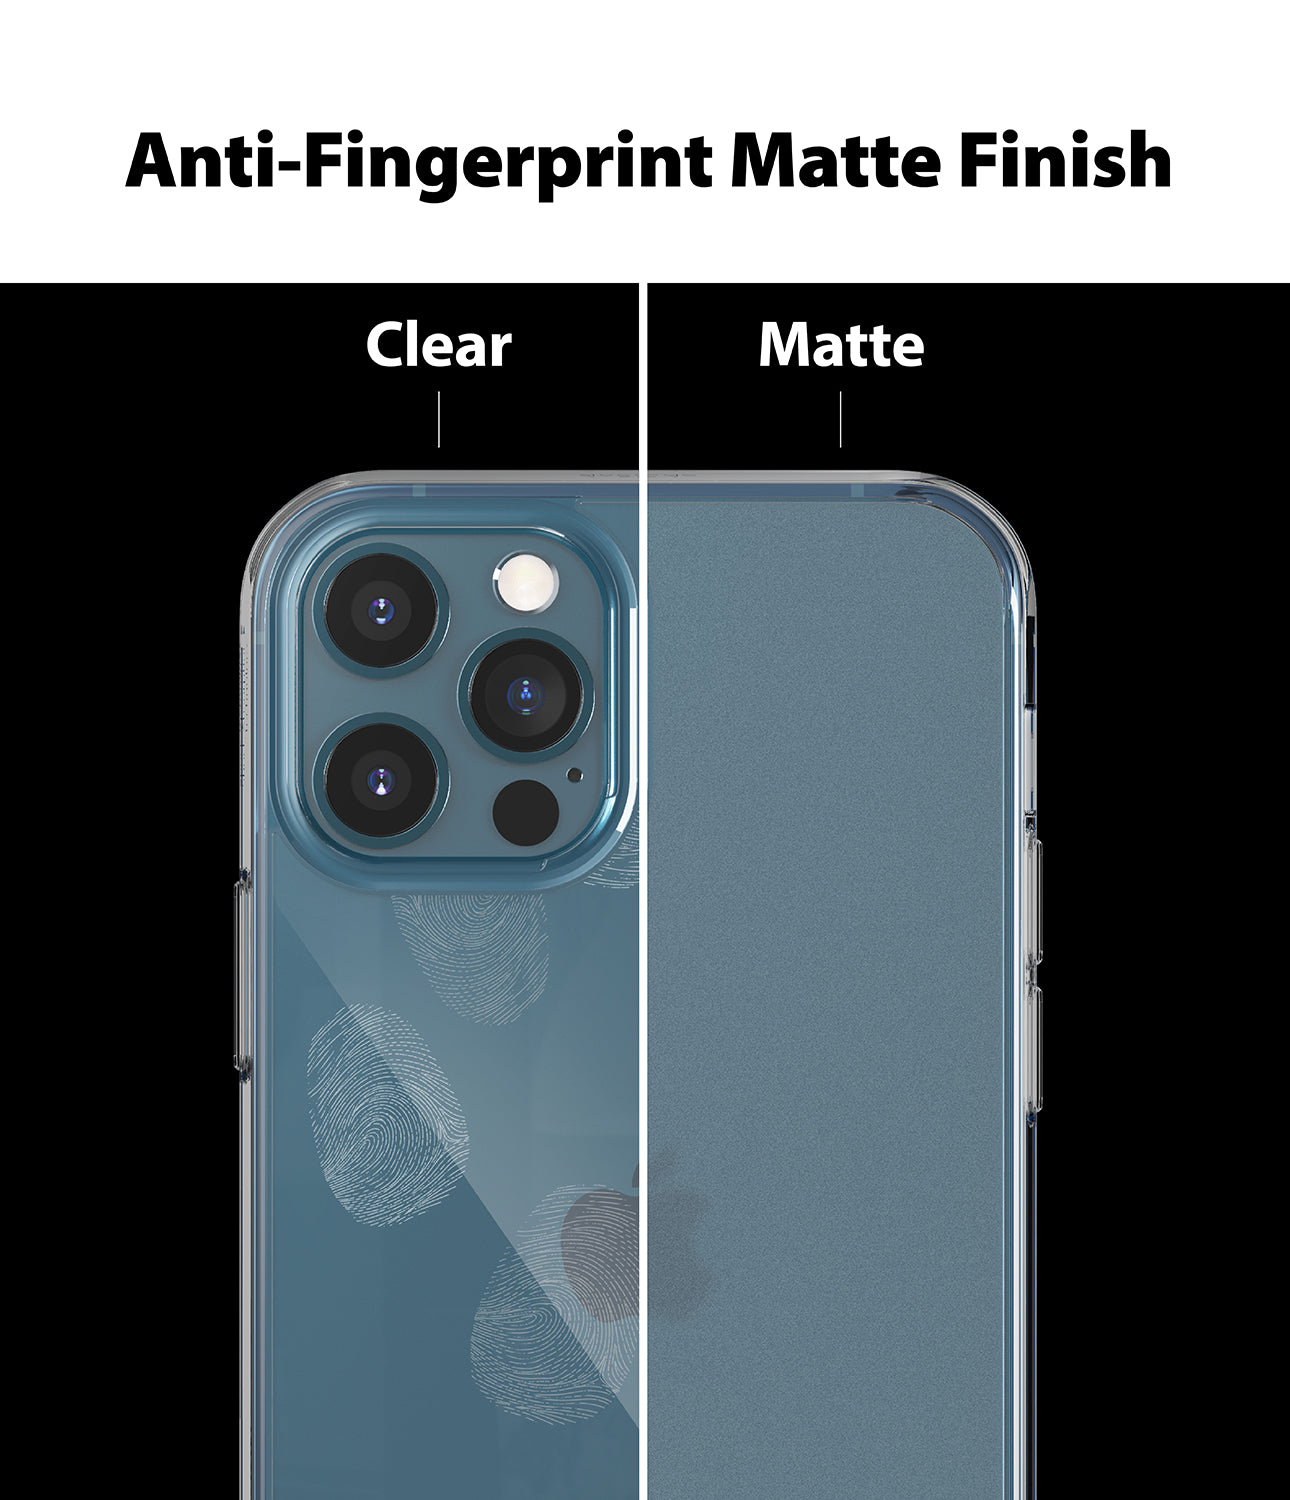 Anti-Fingerprint Matte Finish